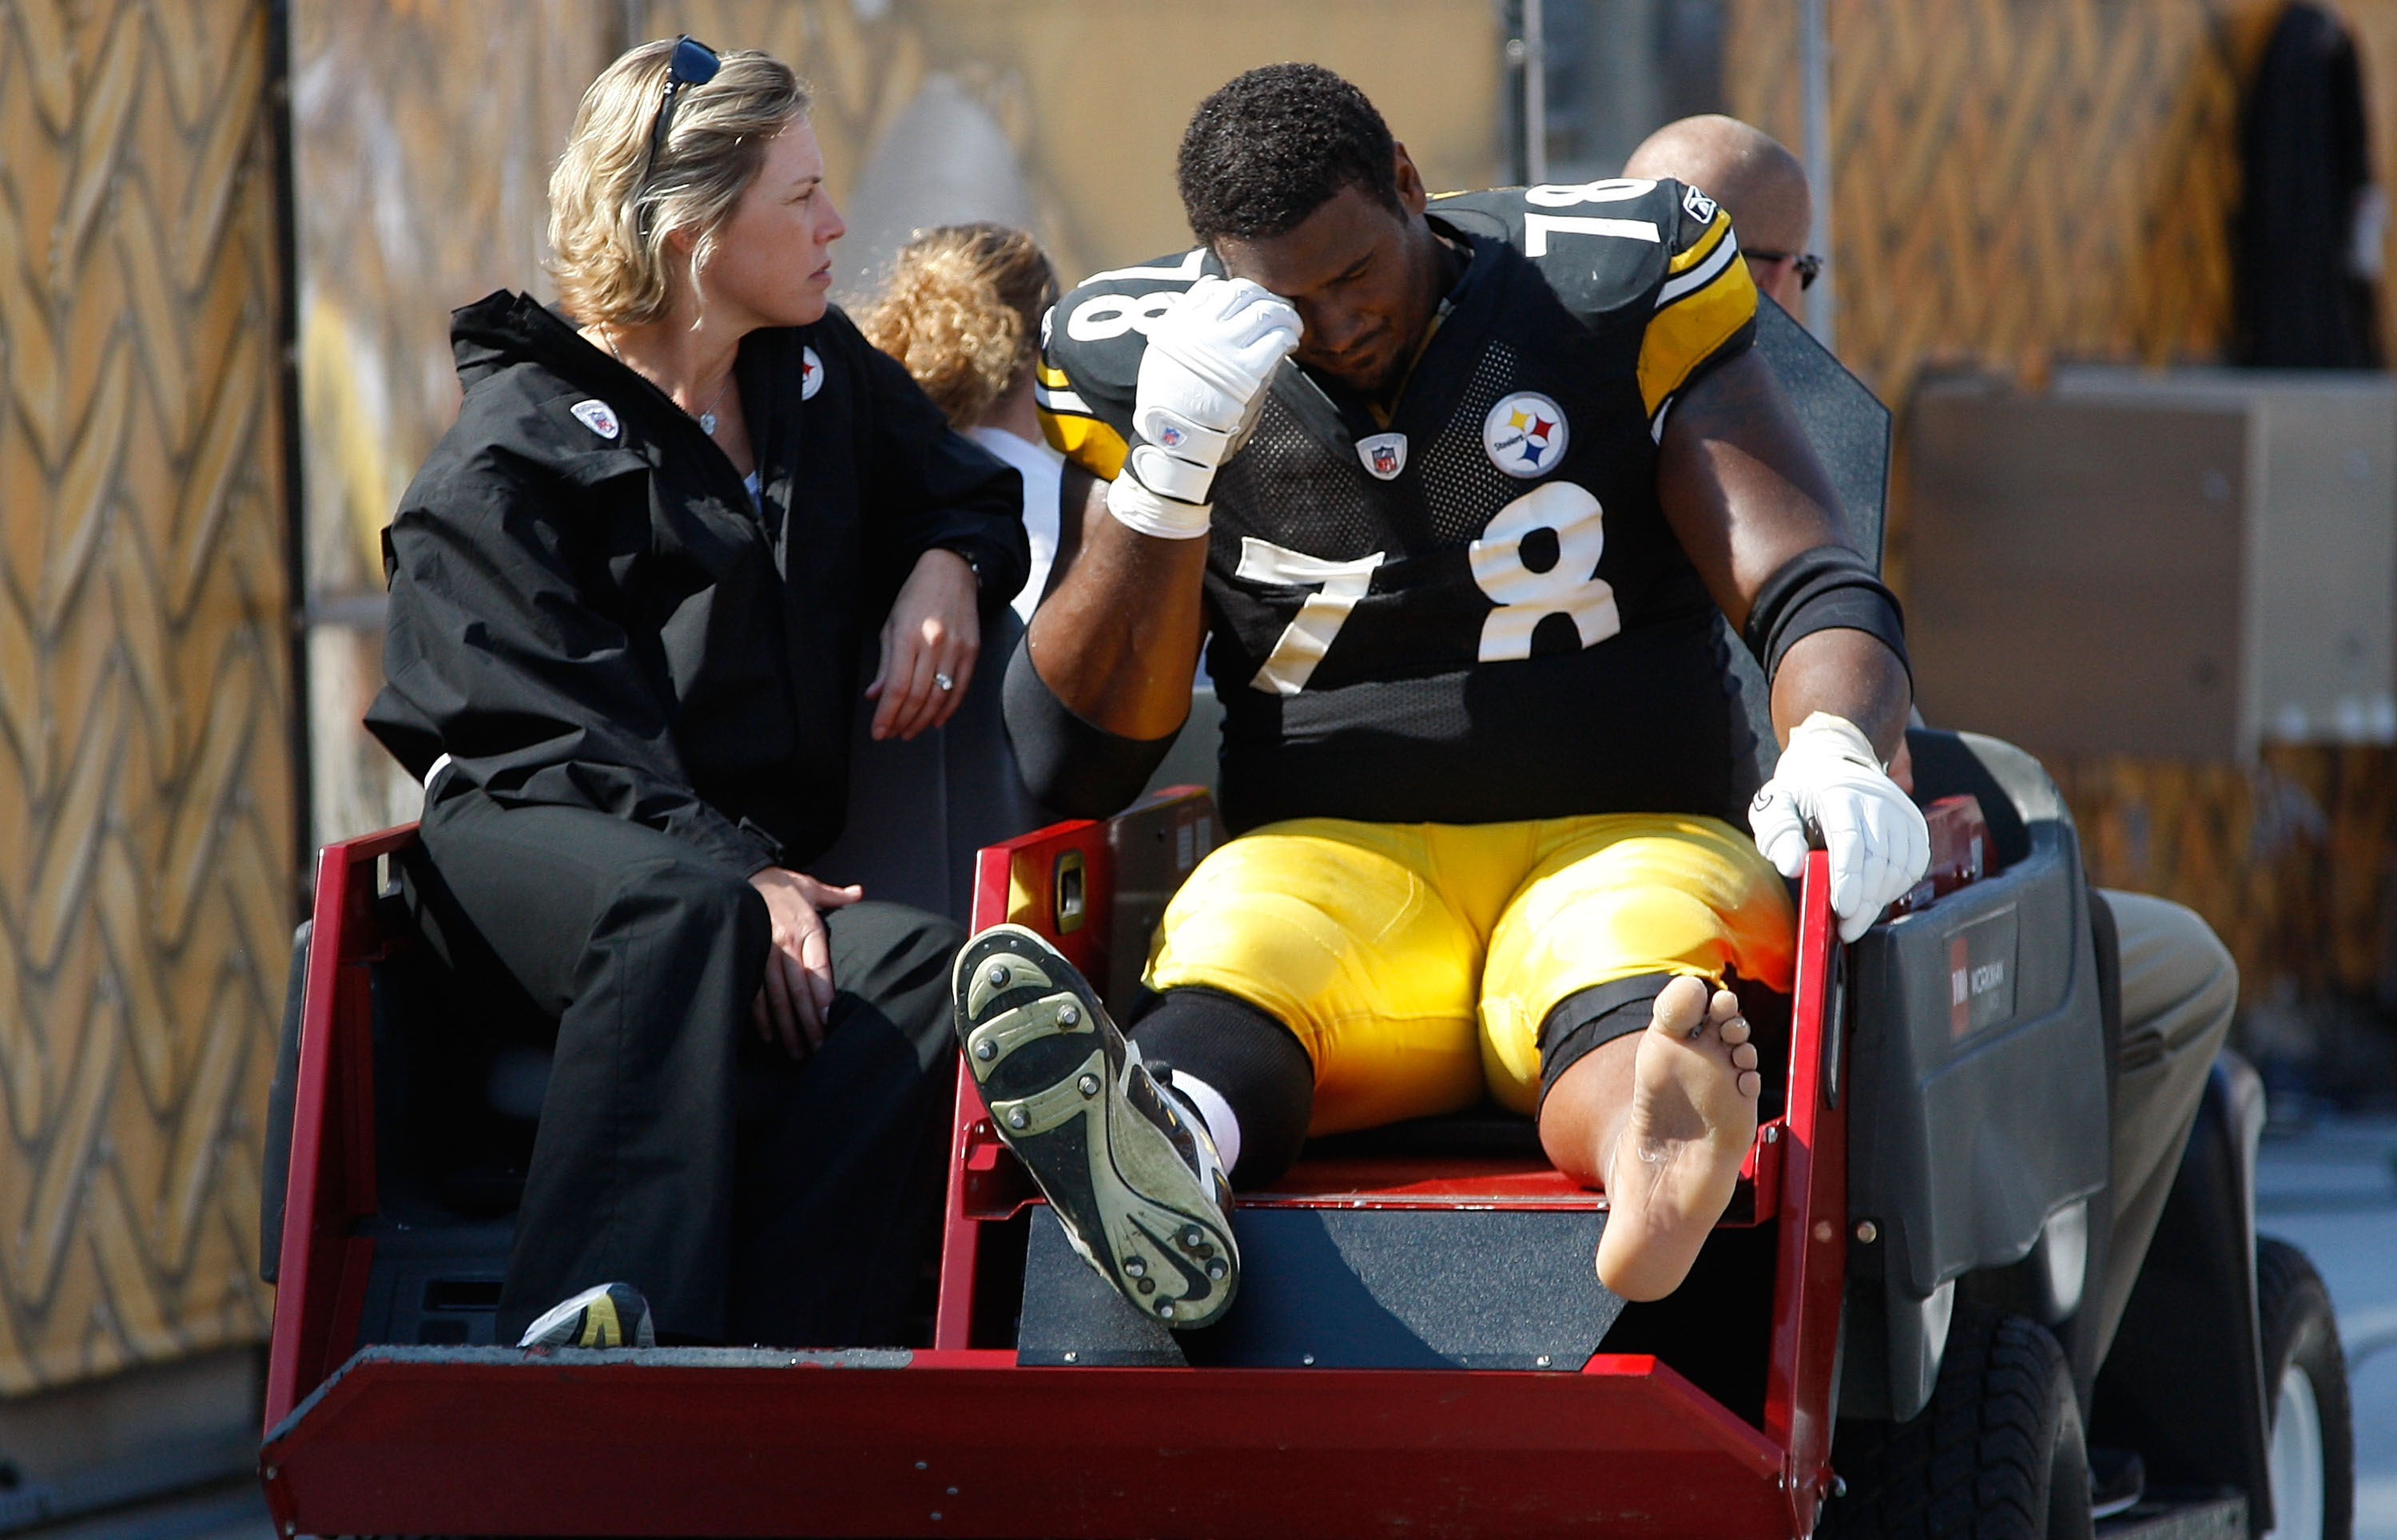 PITTSBURGH - SEPTEMBER 12:  Max Starks #78 of the Pittsburgh Steelers is carted off the field after getting injured against the Atlanta Falcons during the NFL season opener game on September 12, 2010 at Heinz Field in Pittsburgh, Pennsylvania.  (Photo by